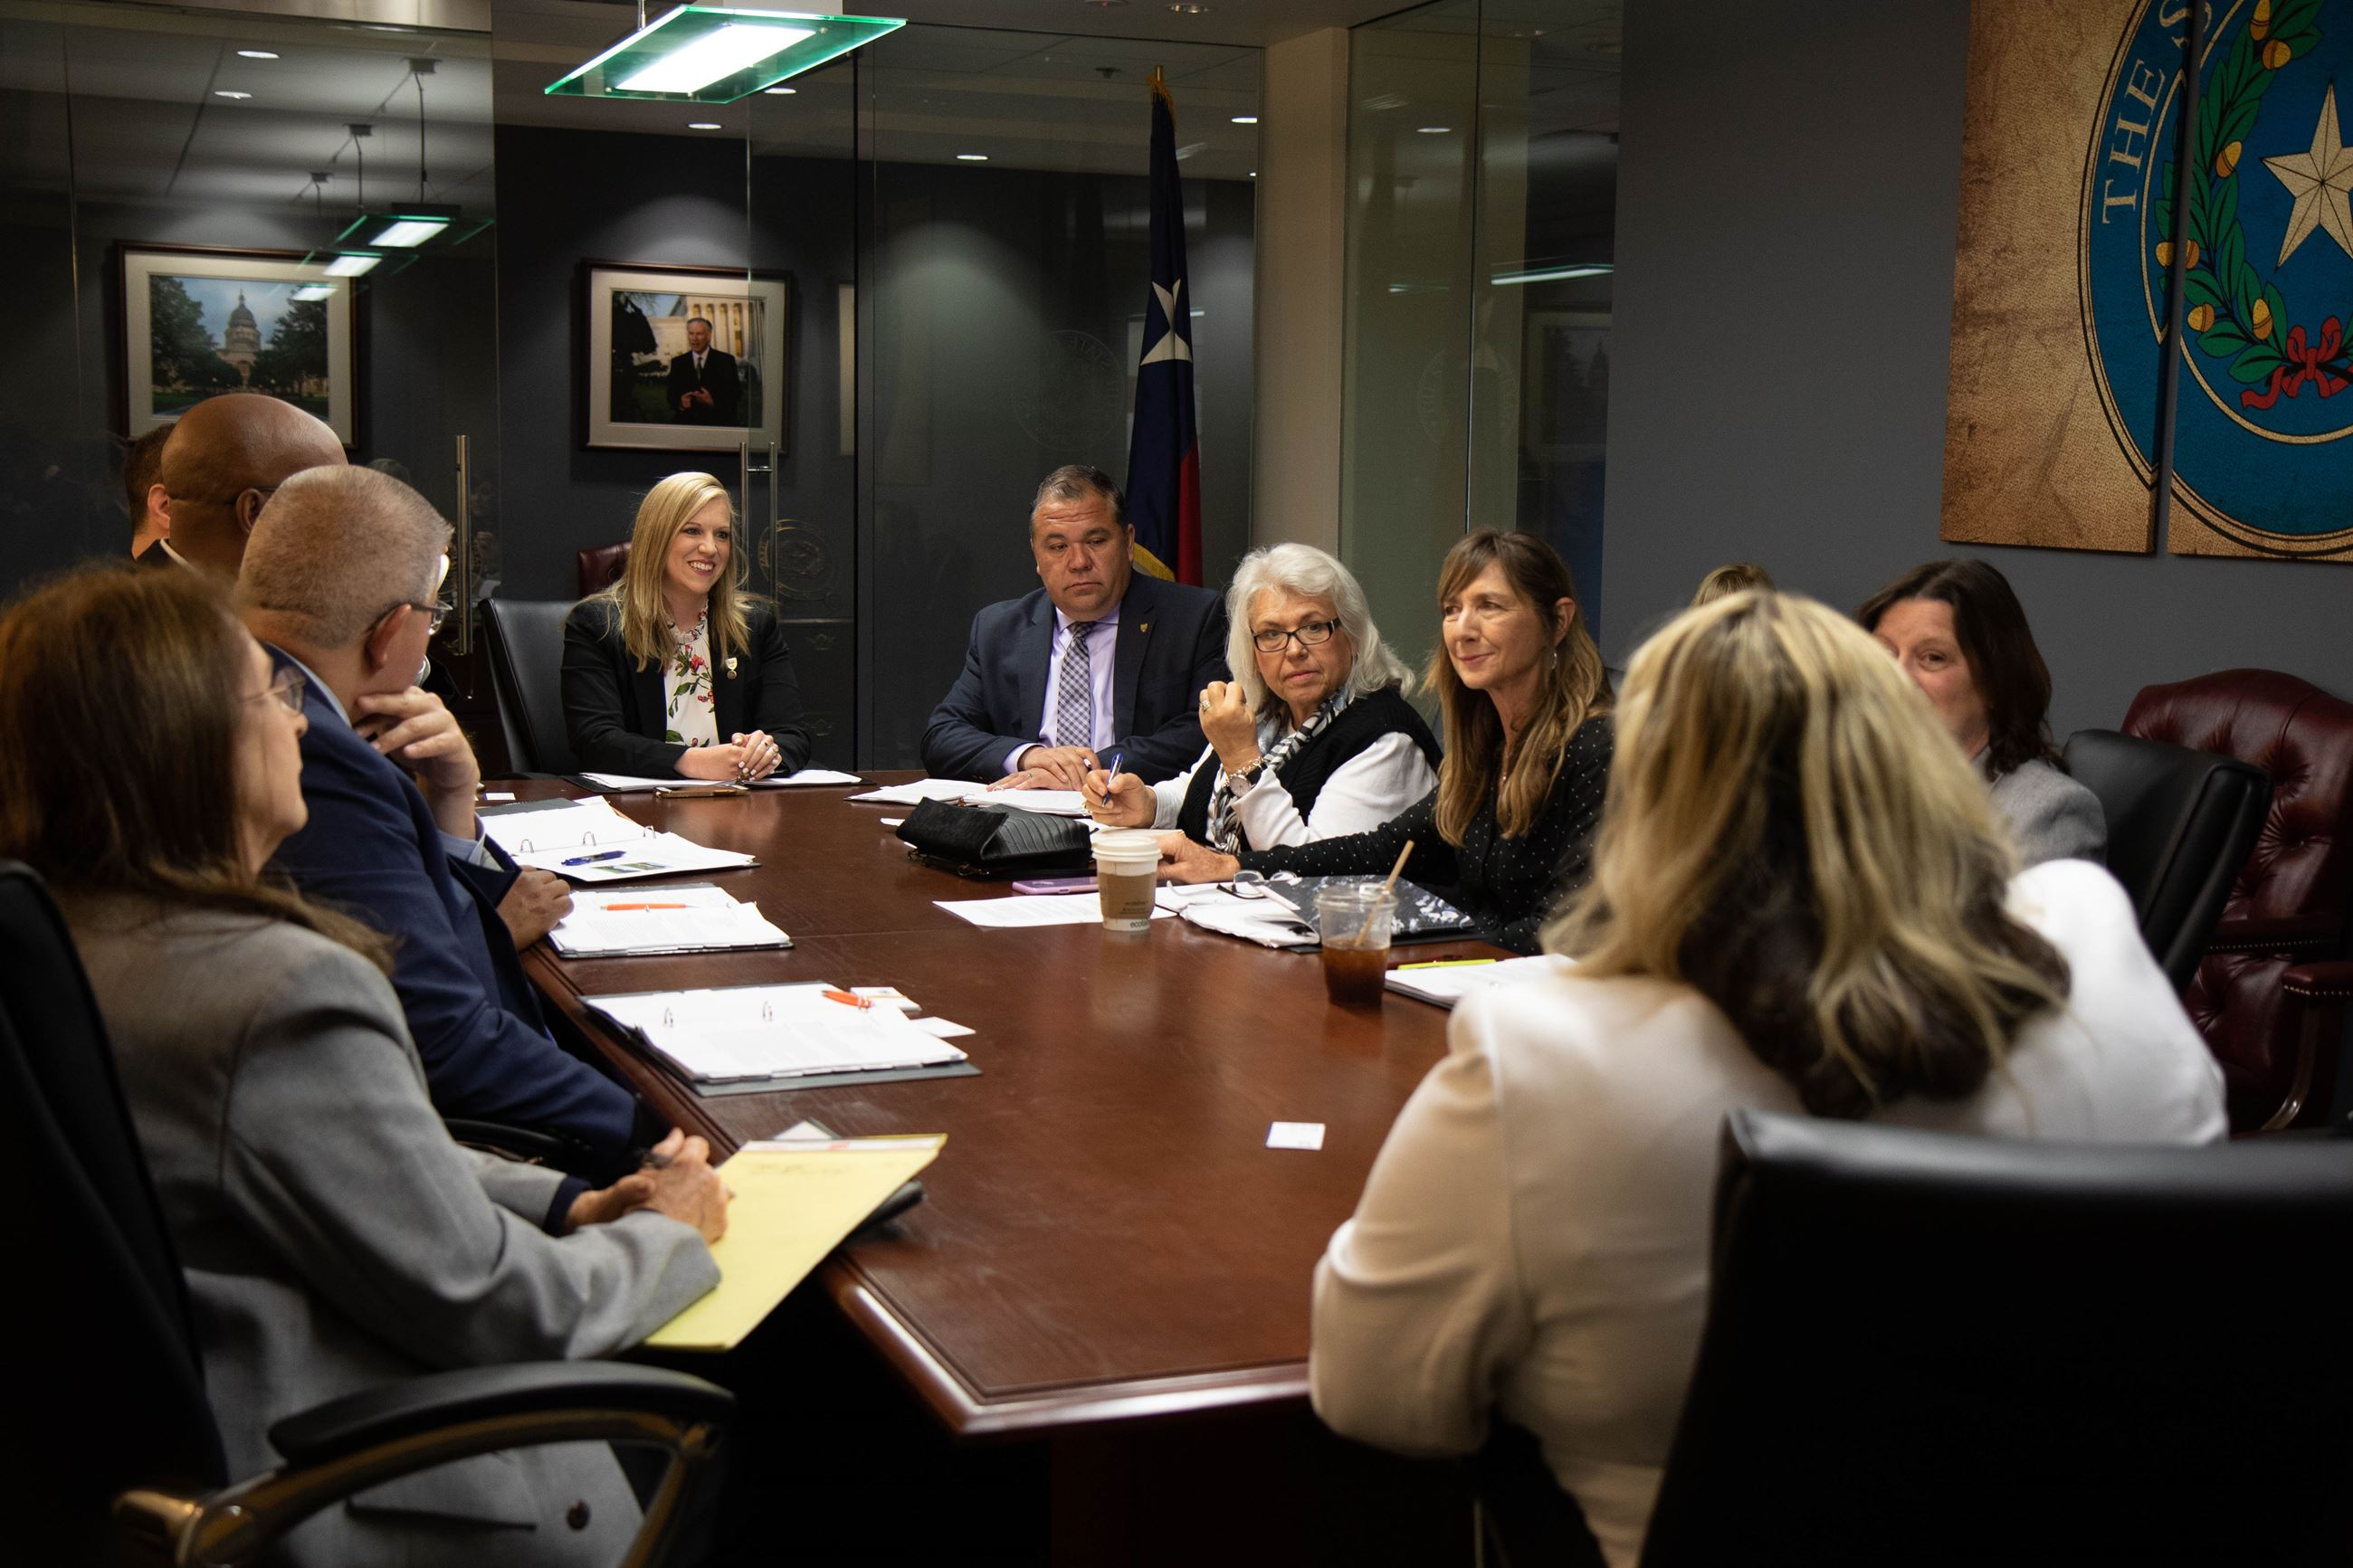 City Staff and Council Members meet in a conference room in Washington D.C.